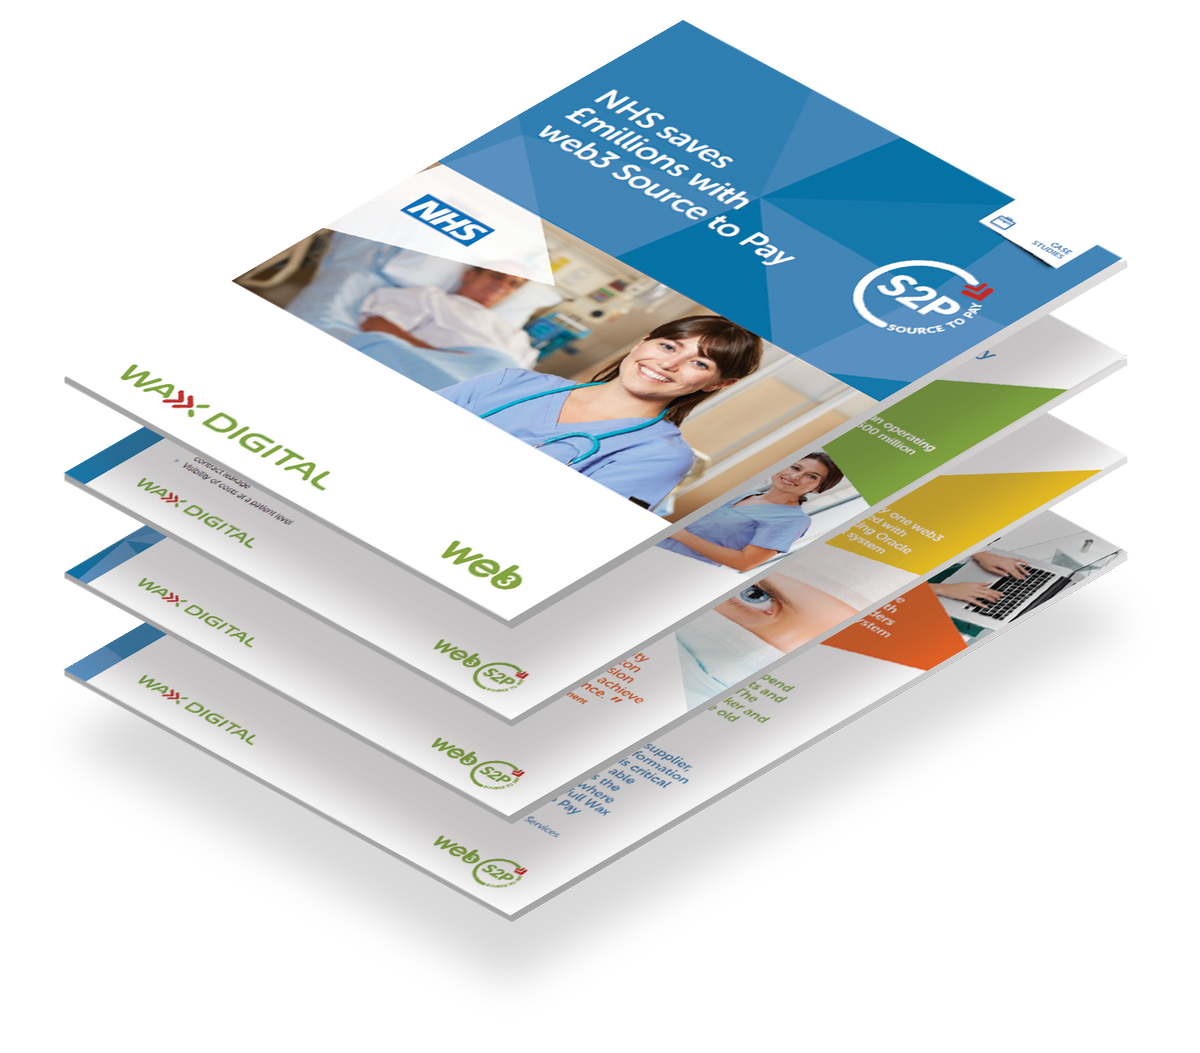 Discover how a single NHS Trust #procurement team saves £millions every year:  http:// ow.ly/rBEh30erF90  &nbsp;   #eProcurement<br>http://pic.twitter.com/SPXAmBQzmi